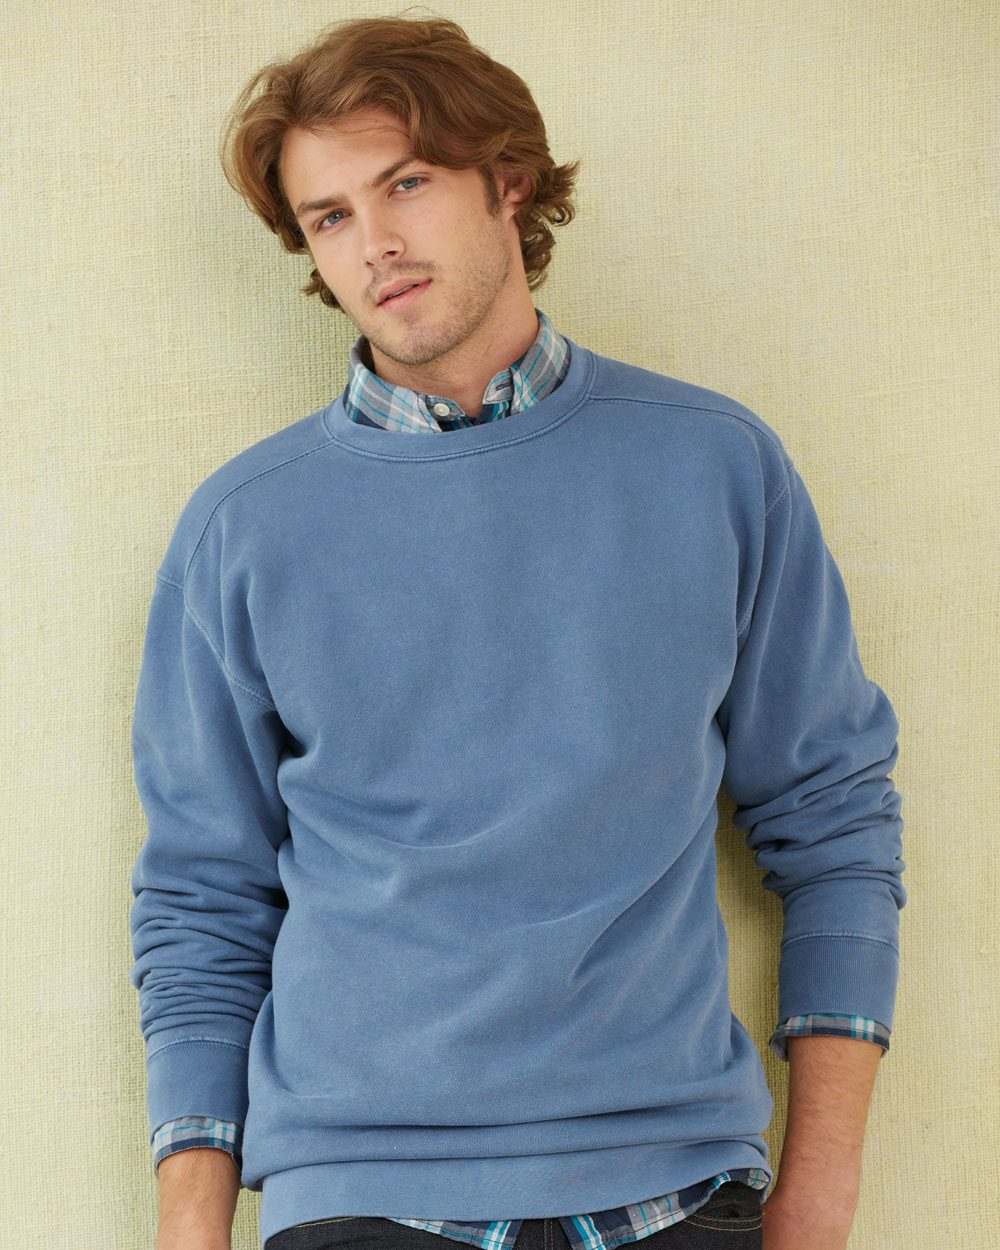 Comfort Colors 1566     Adult Crewneck Sweatshirt    80% Ring Spun Cotton/20% Polyester